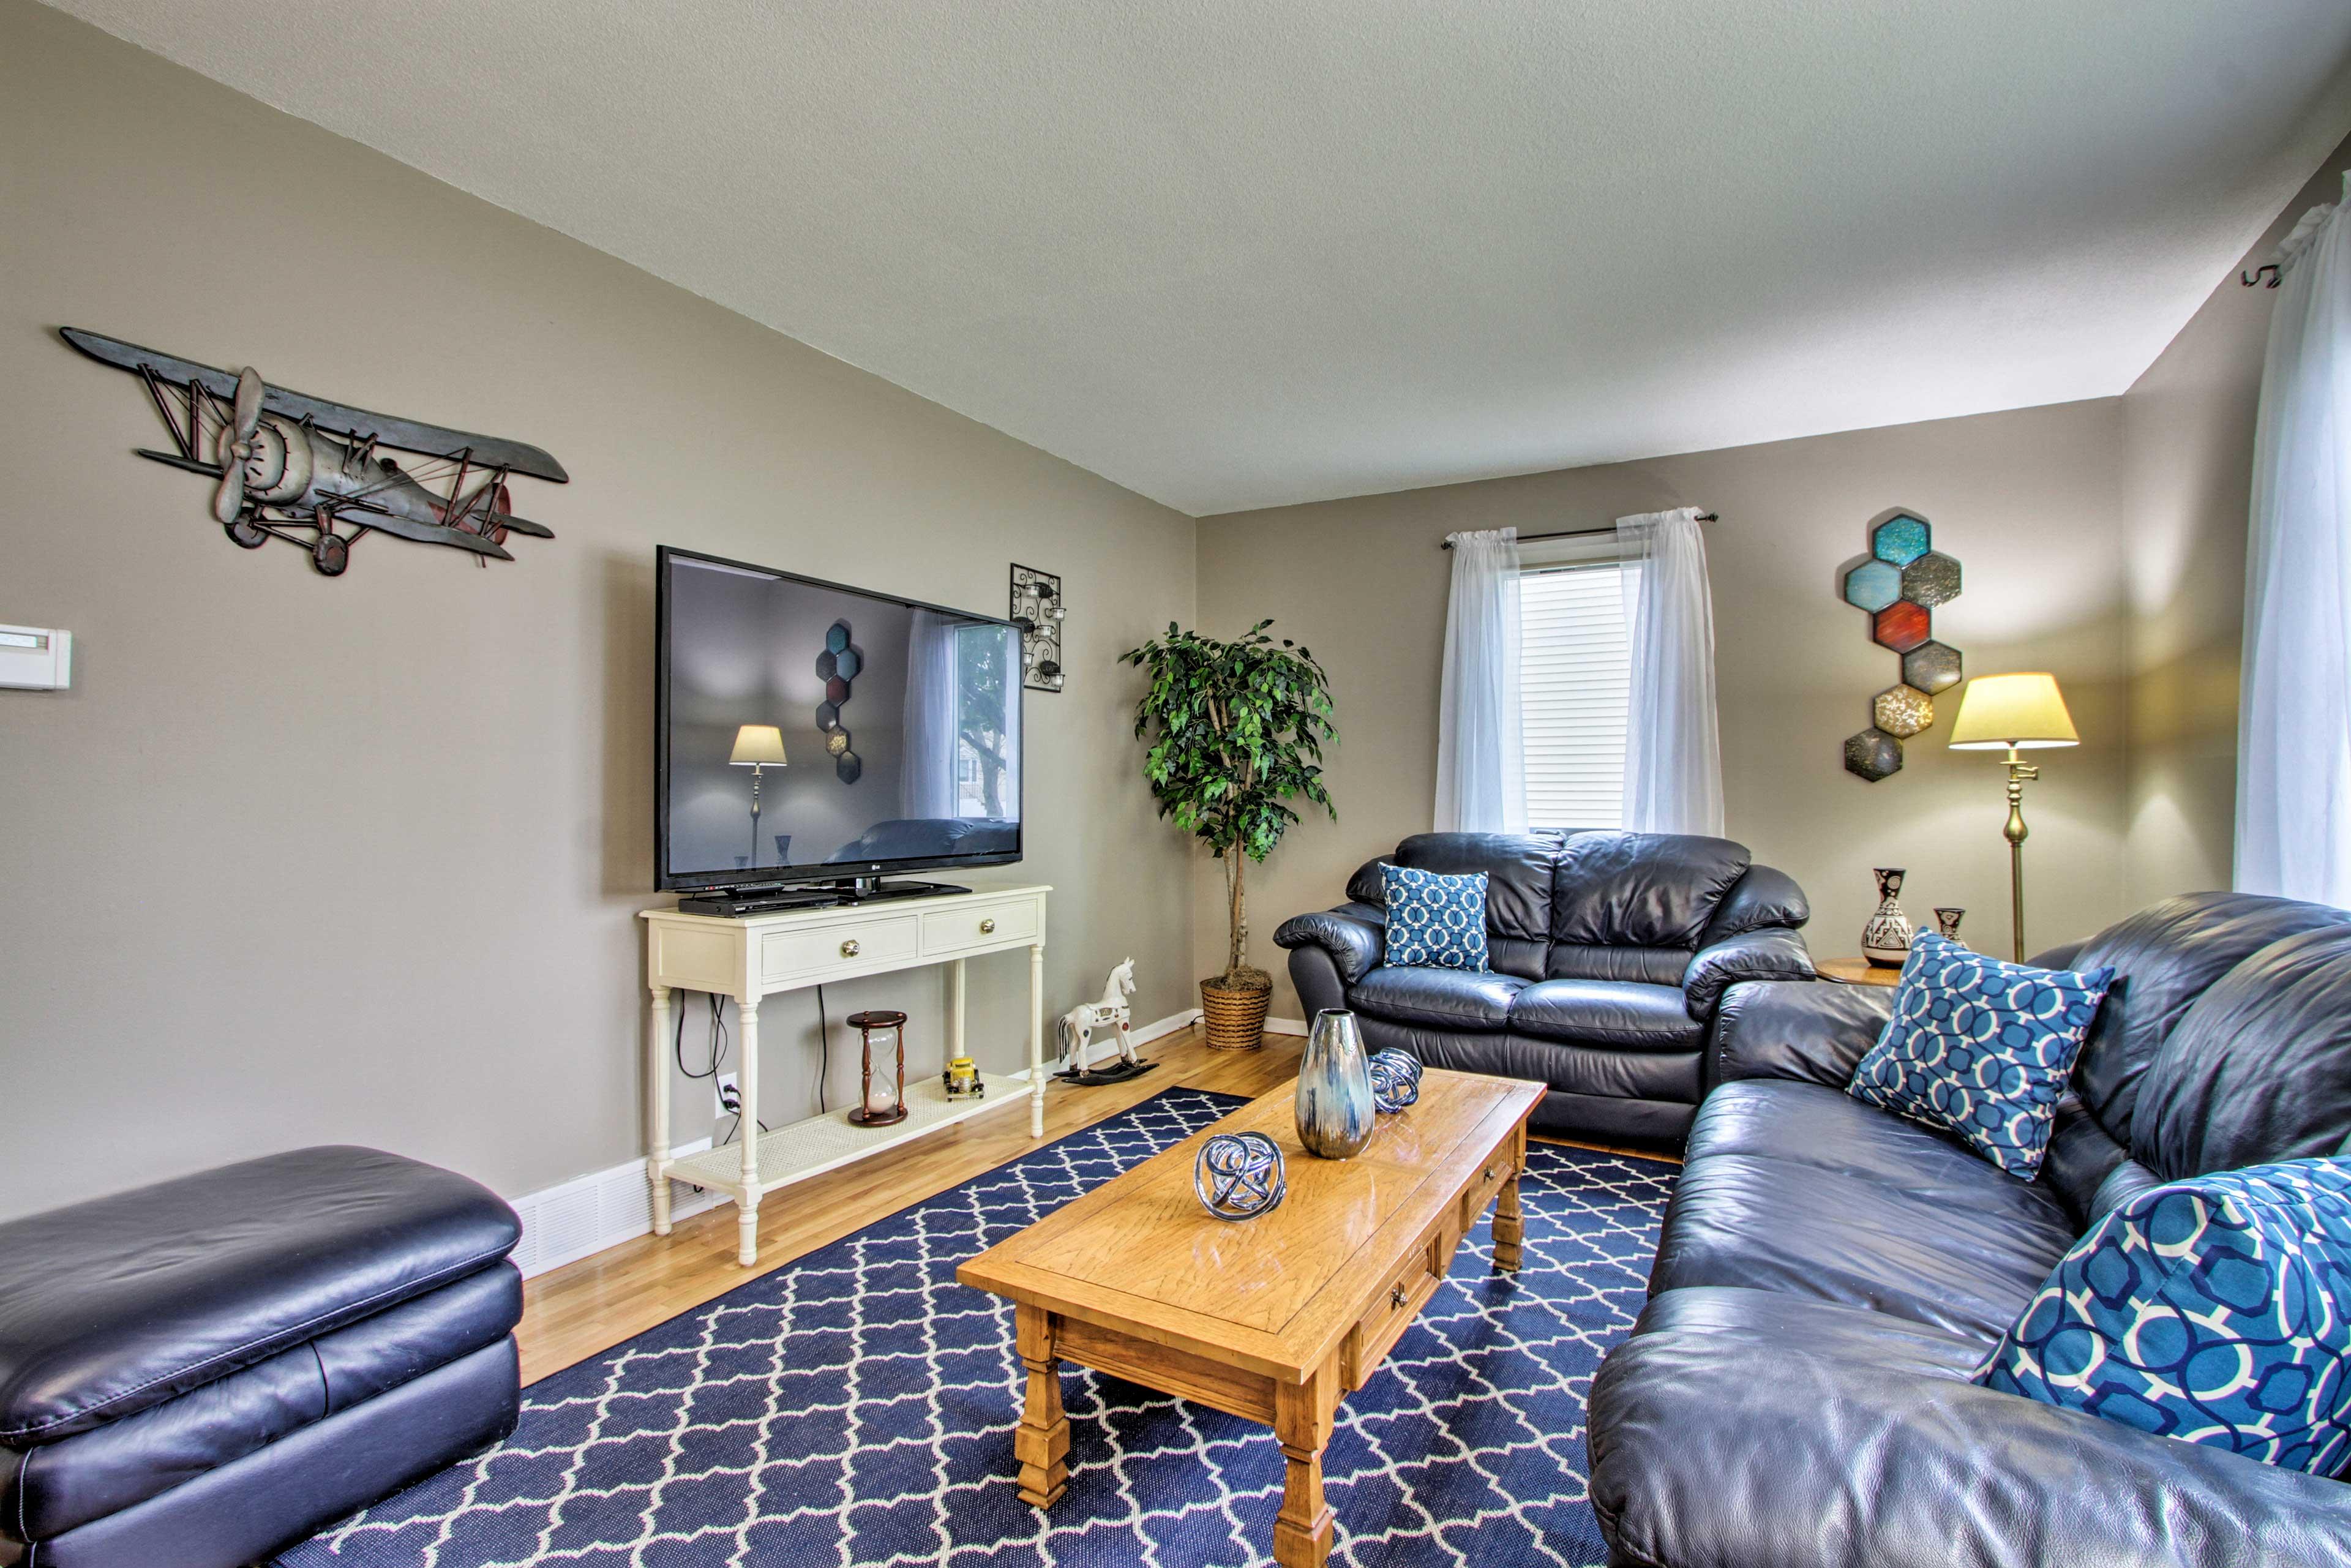 Your trip to Rochester begins by booking this 4-bedroom, 2-bath vacation rental.